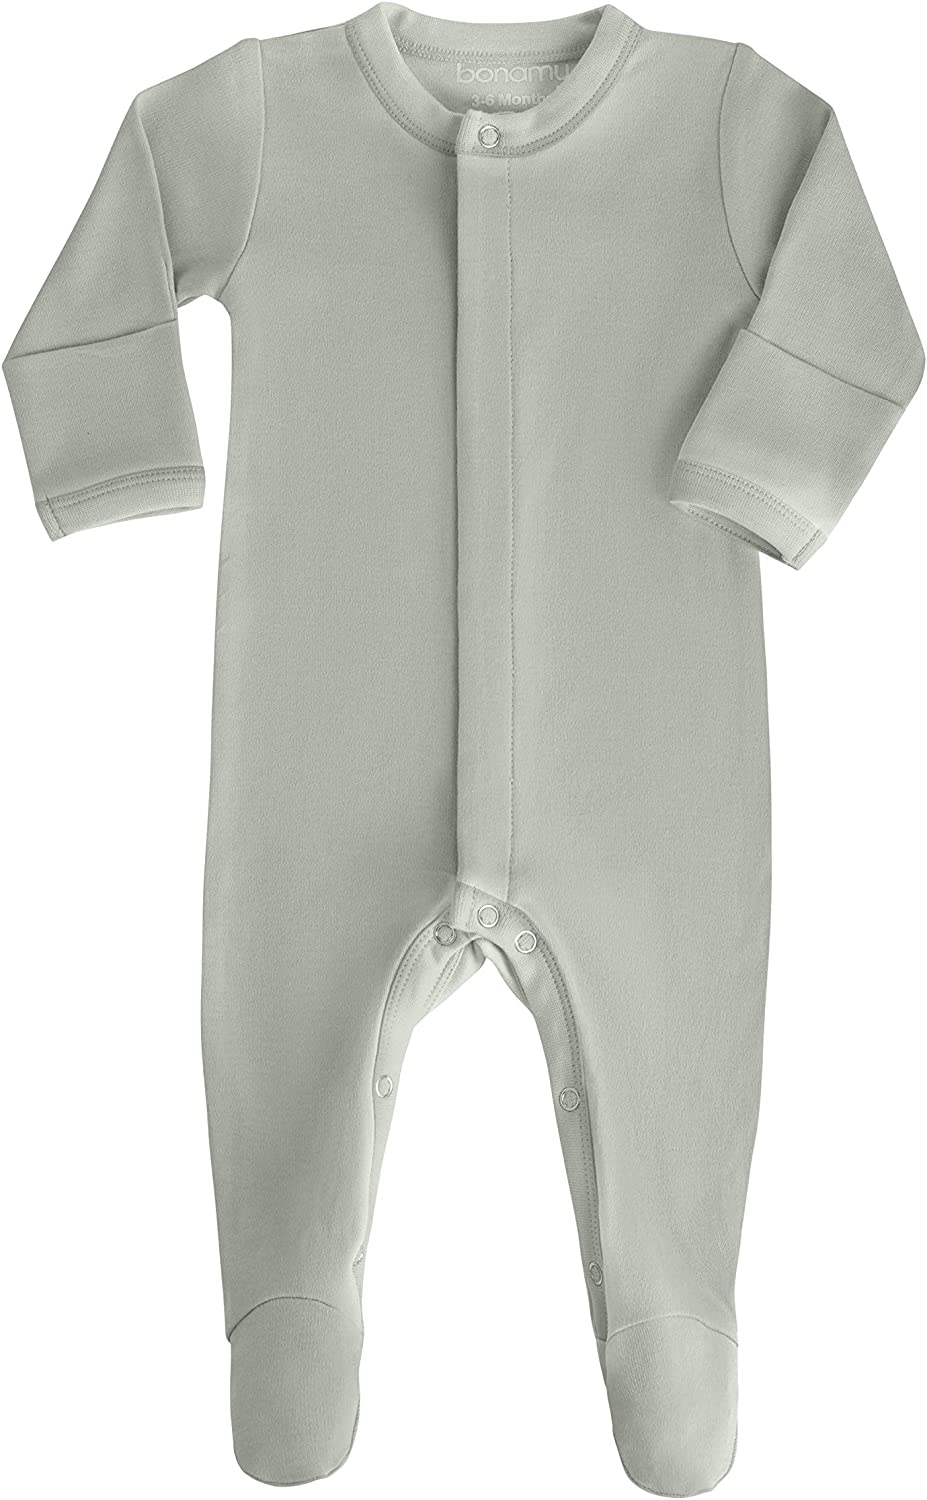 bonamy Baby Unisex Organic Cotton Zipper Footie-Footed Sleep and Play with Mittens